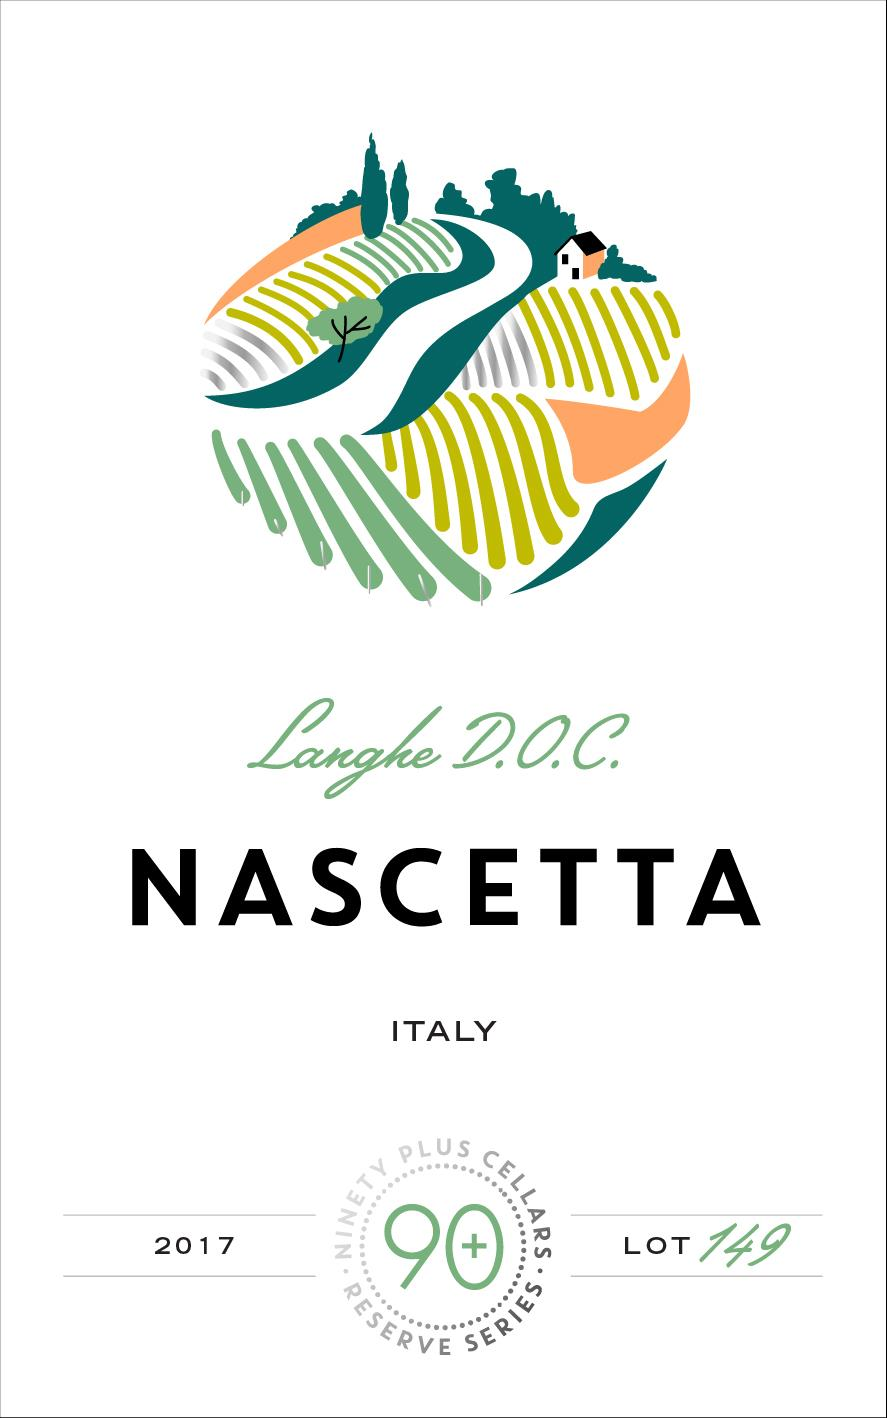 If dropping $25-$30 on a bottle of nearly extinct wine isn't your thing, $14 for this one will give you a great introduction to Nascetta!